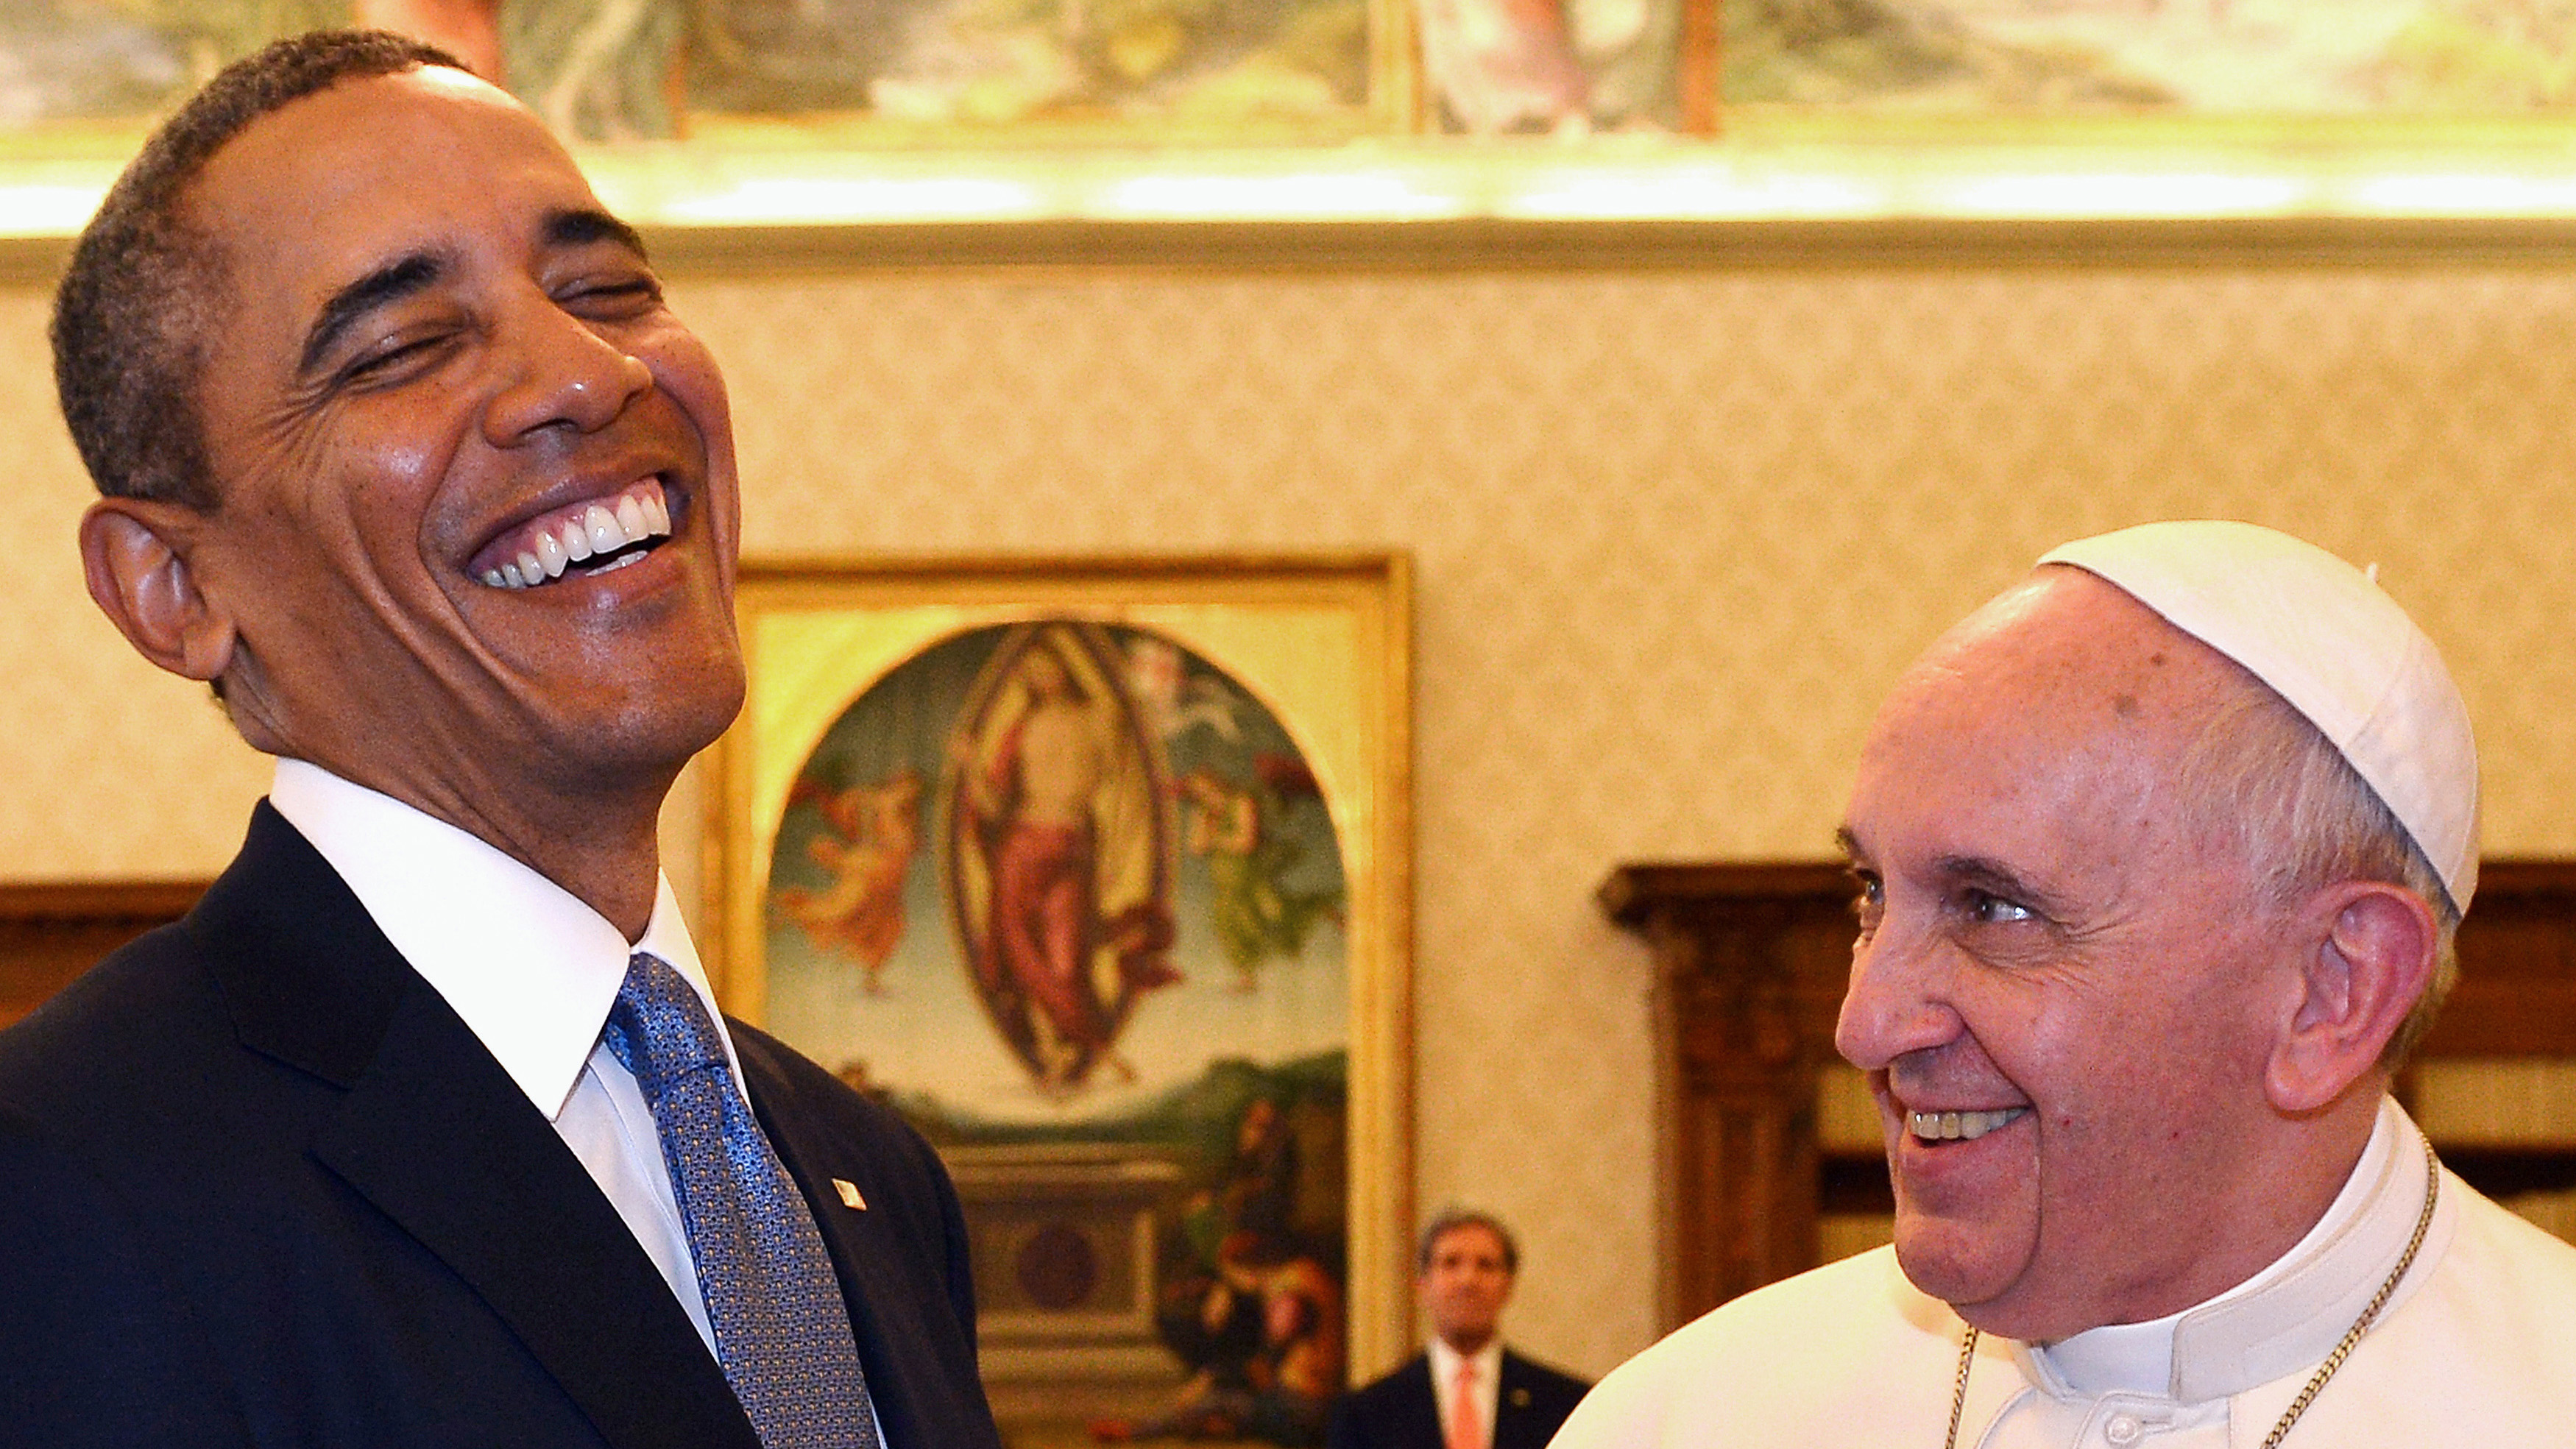 Pope Francis and President Barack Obama enjoying each other's company during their meeting Thursday in the Vatican.